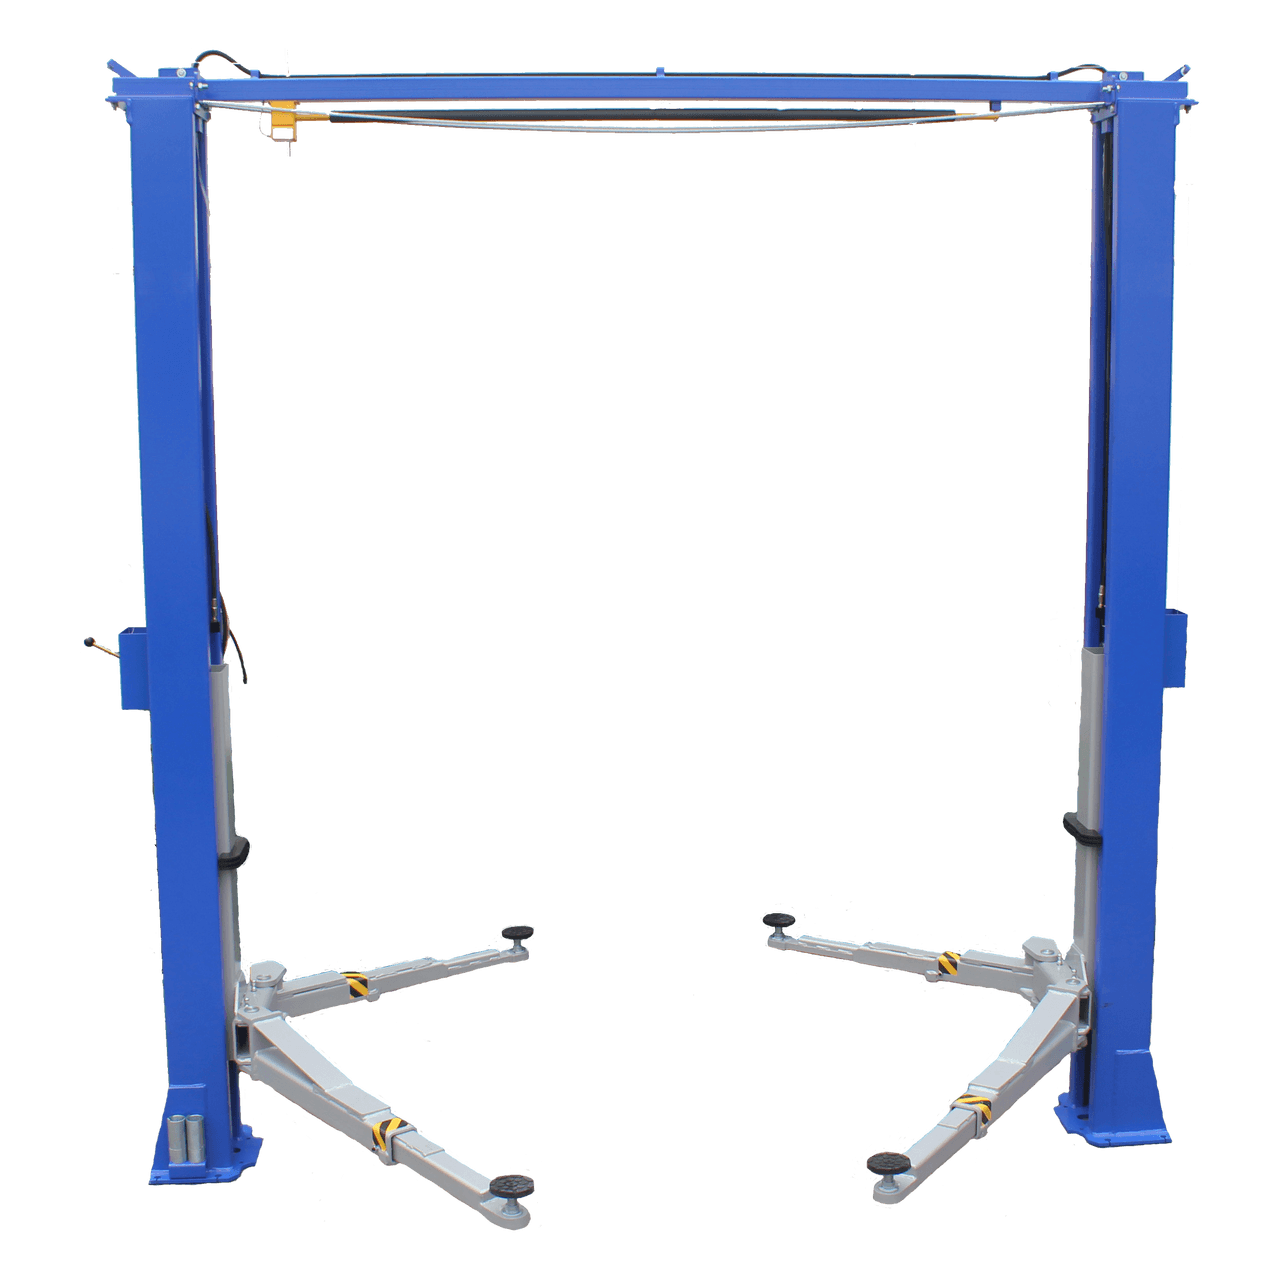 FC64 Tuxedo Car Lift Wiring Diagram | Wiring Library elevator lift parts Wiring Library